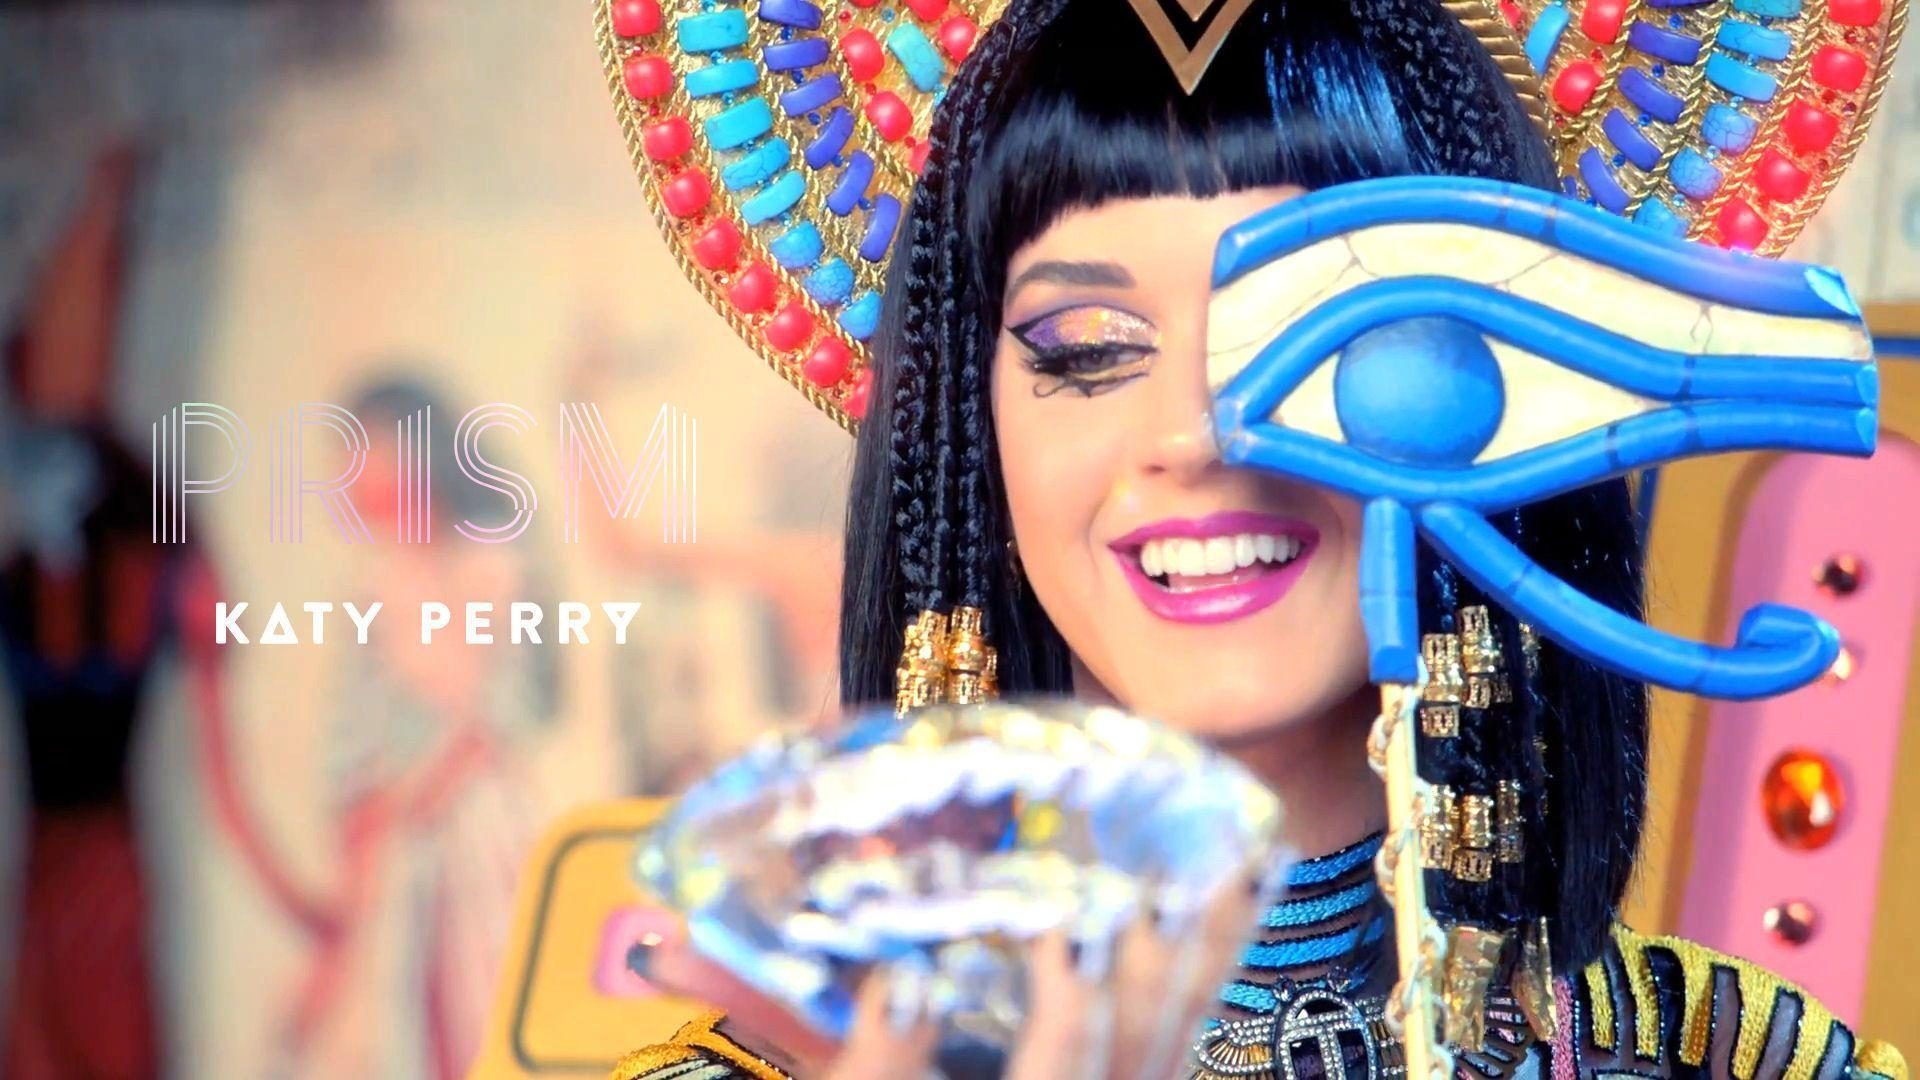 Katy Perry 2015 HD Wallpaper Gallery Full Desktop